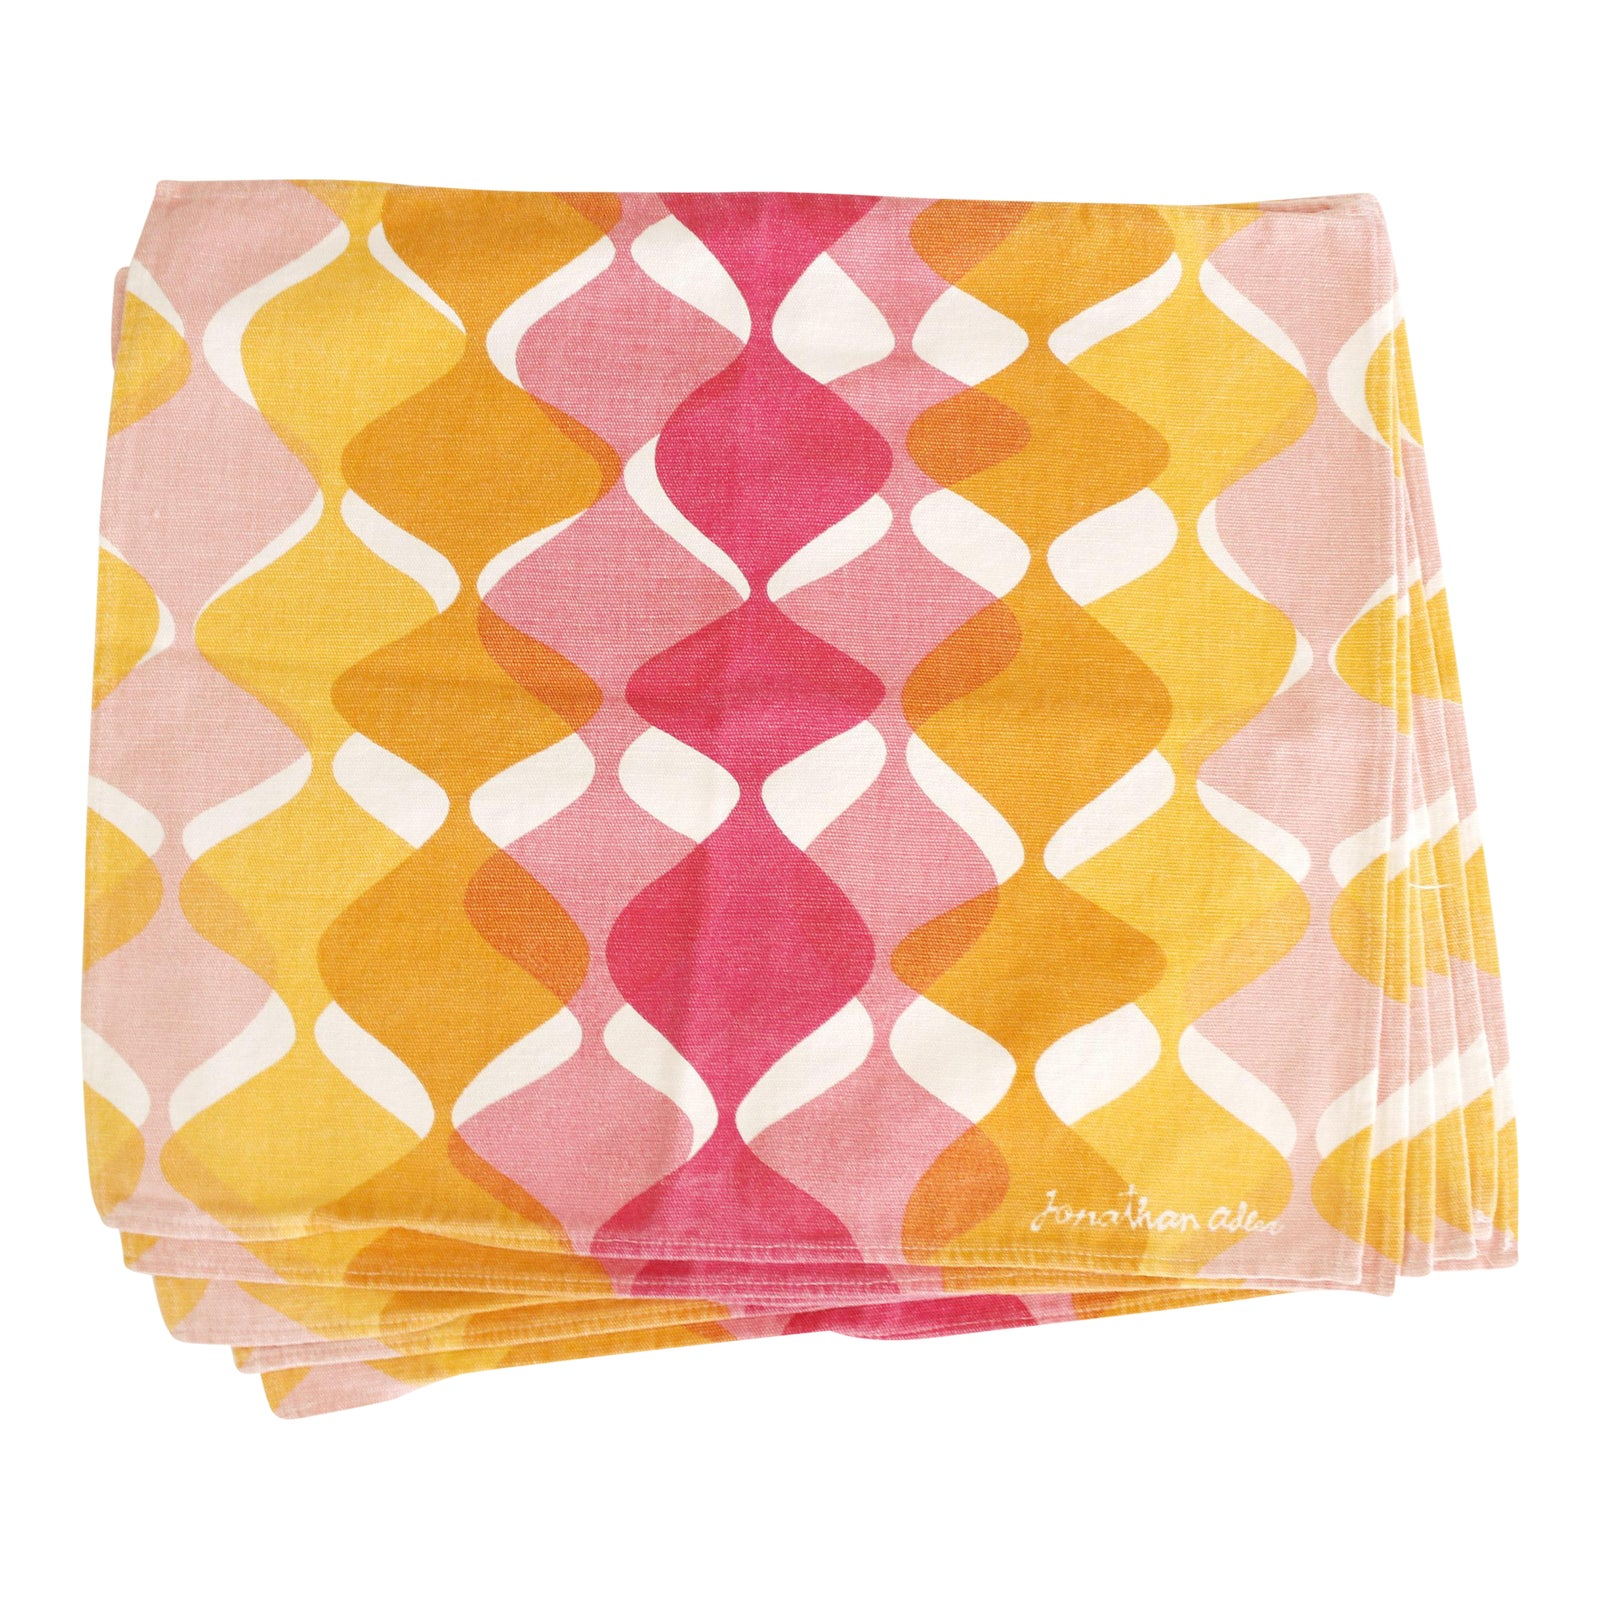 Jonathan Adler Retro Pink, Yellow & White Cotton Napkins